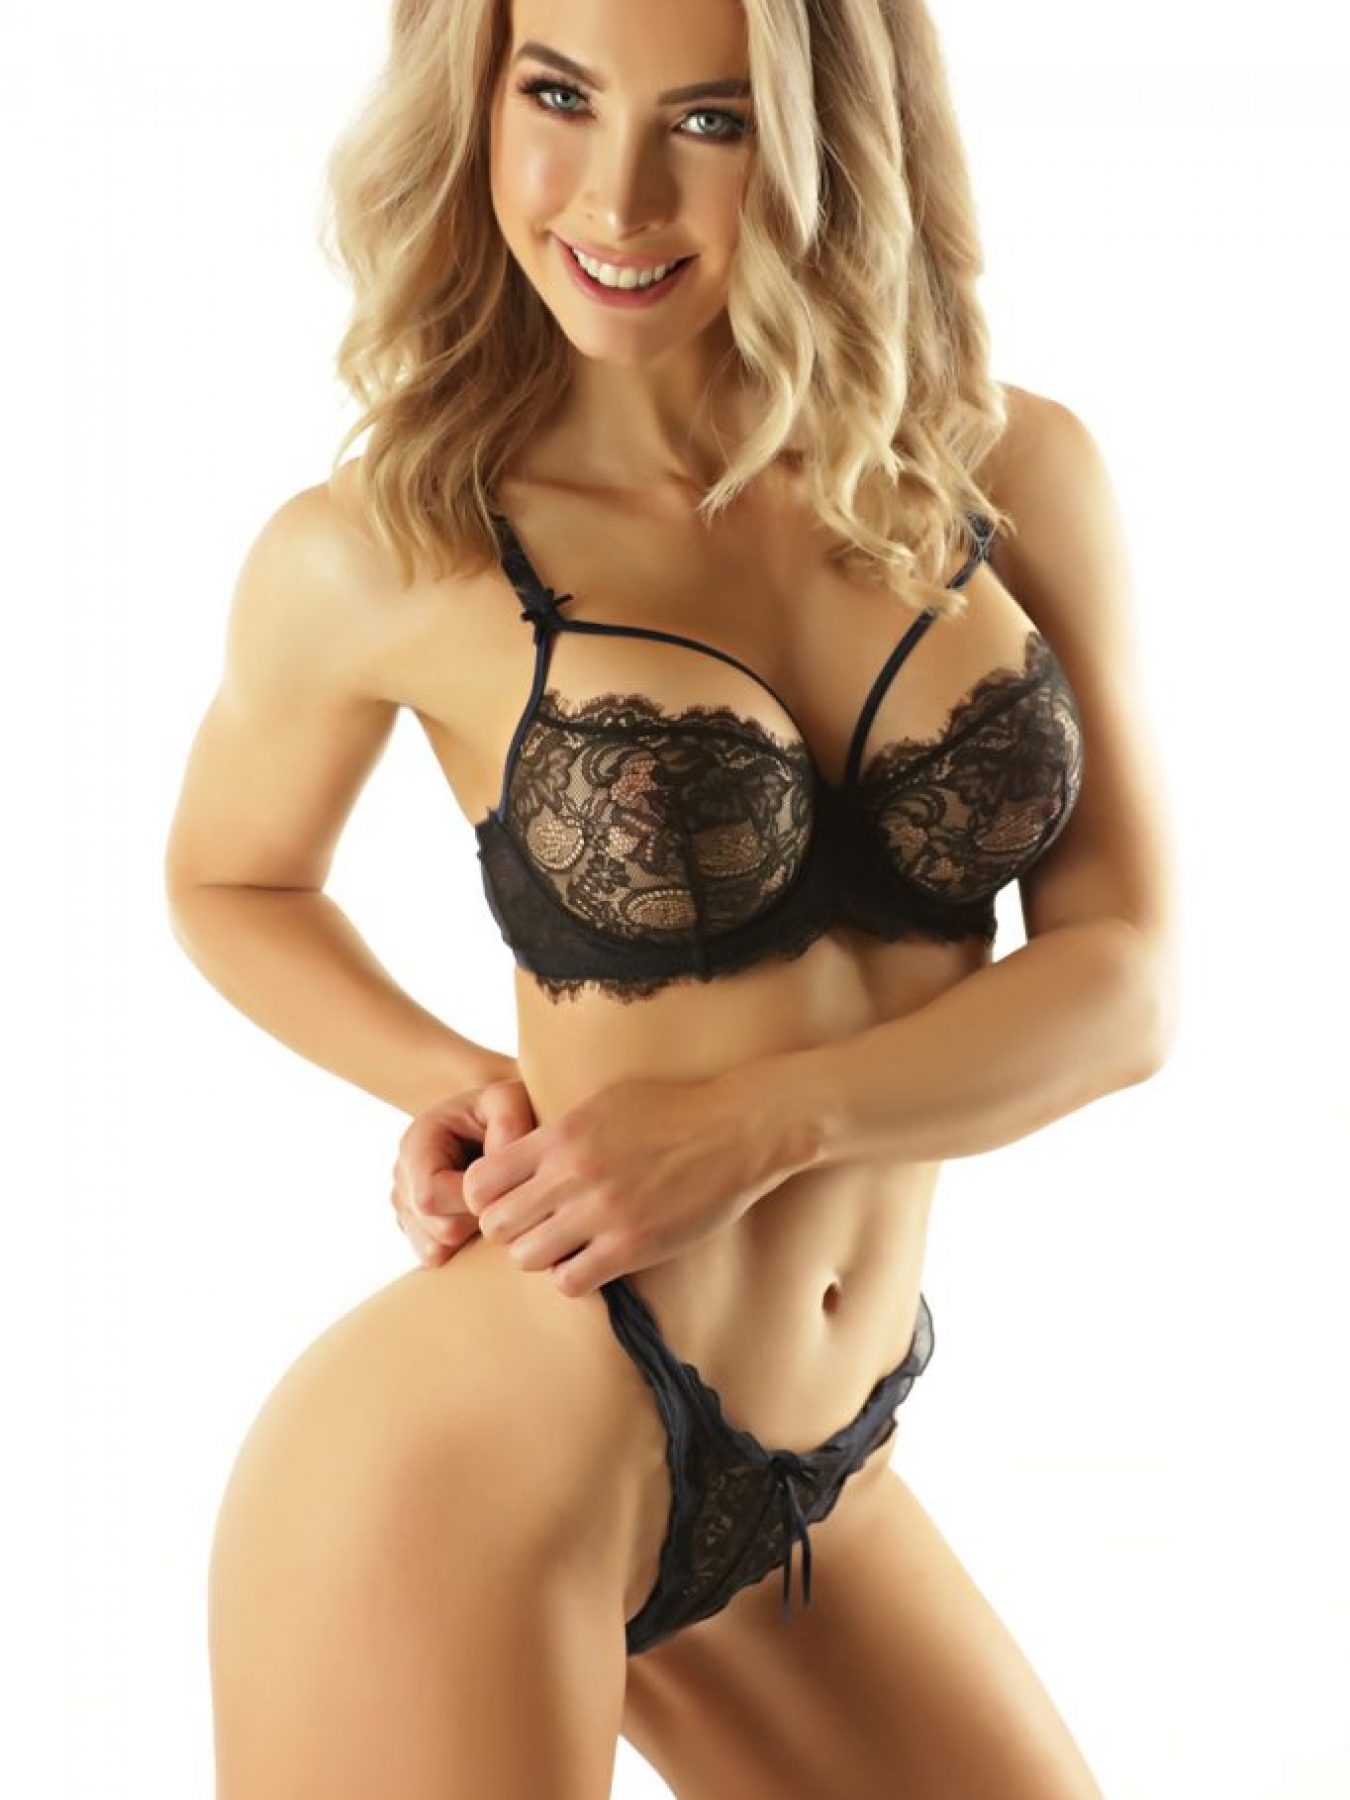 female strippers sydney